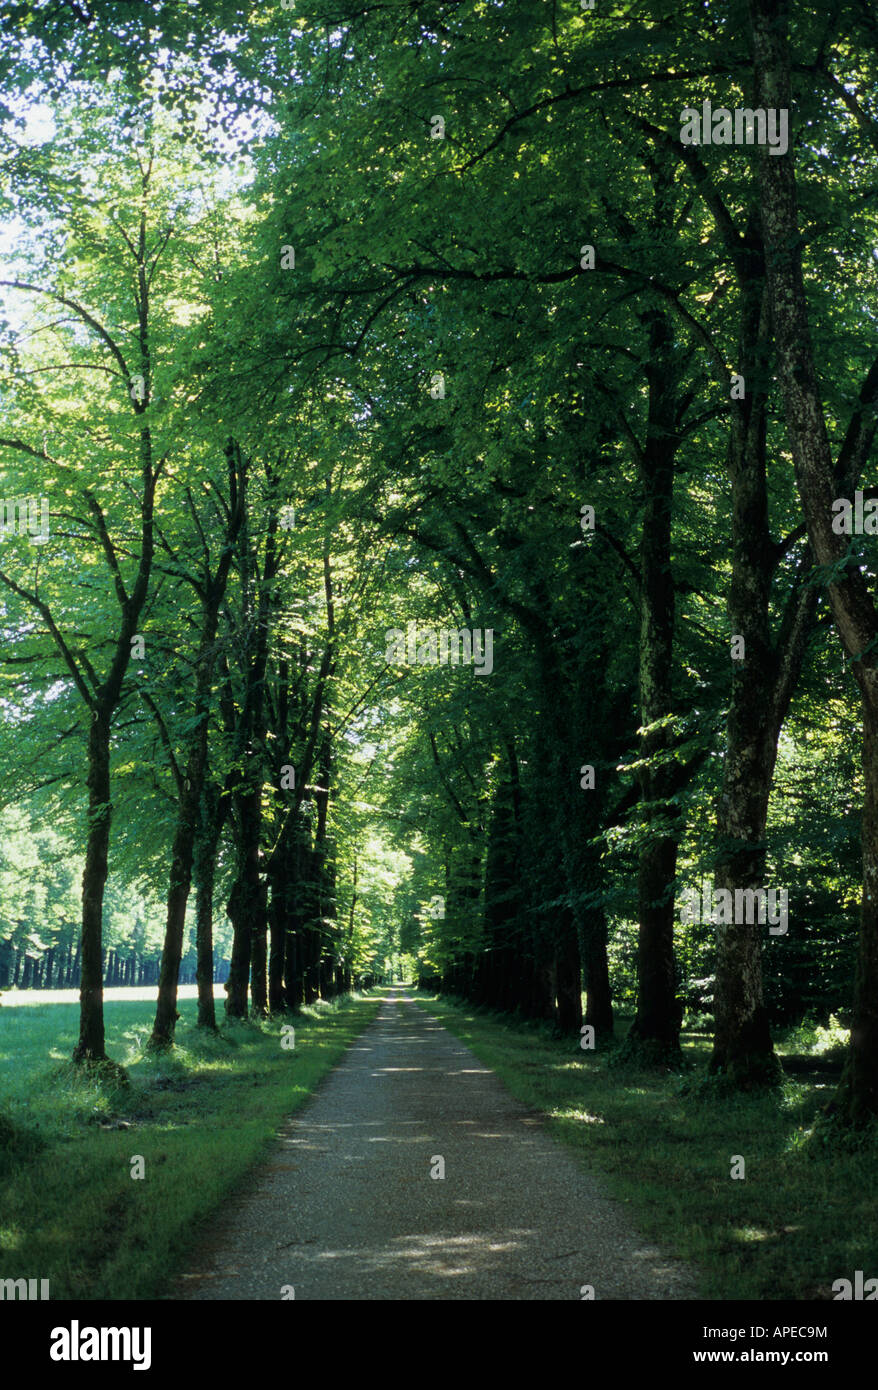 A tree lined path leads to Mad King Ludwig's palace in Bavaria. - Stock Image